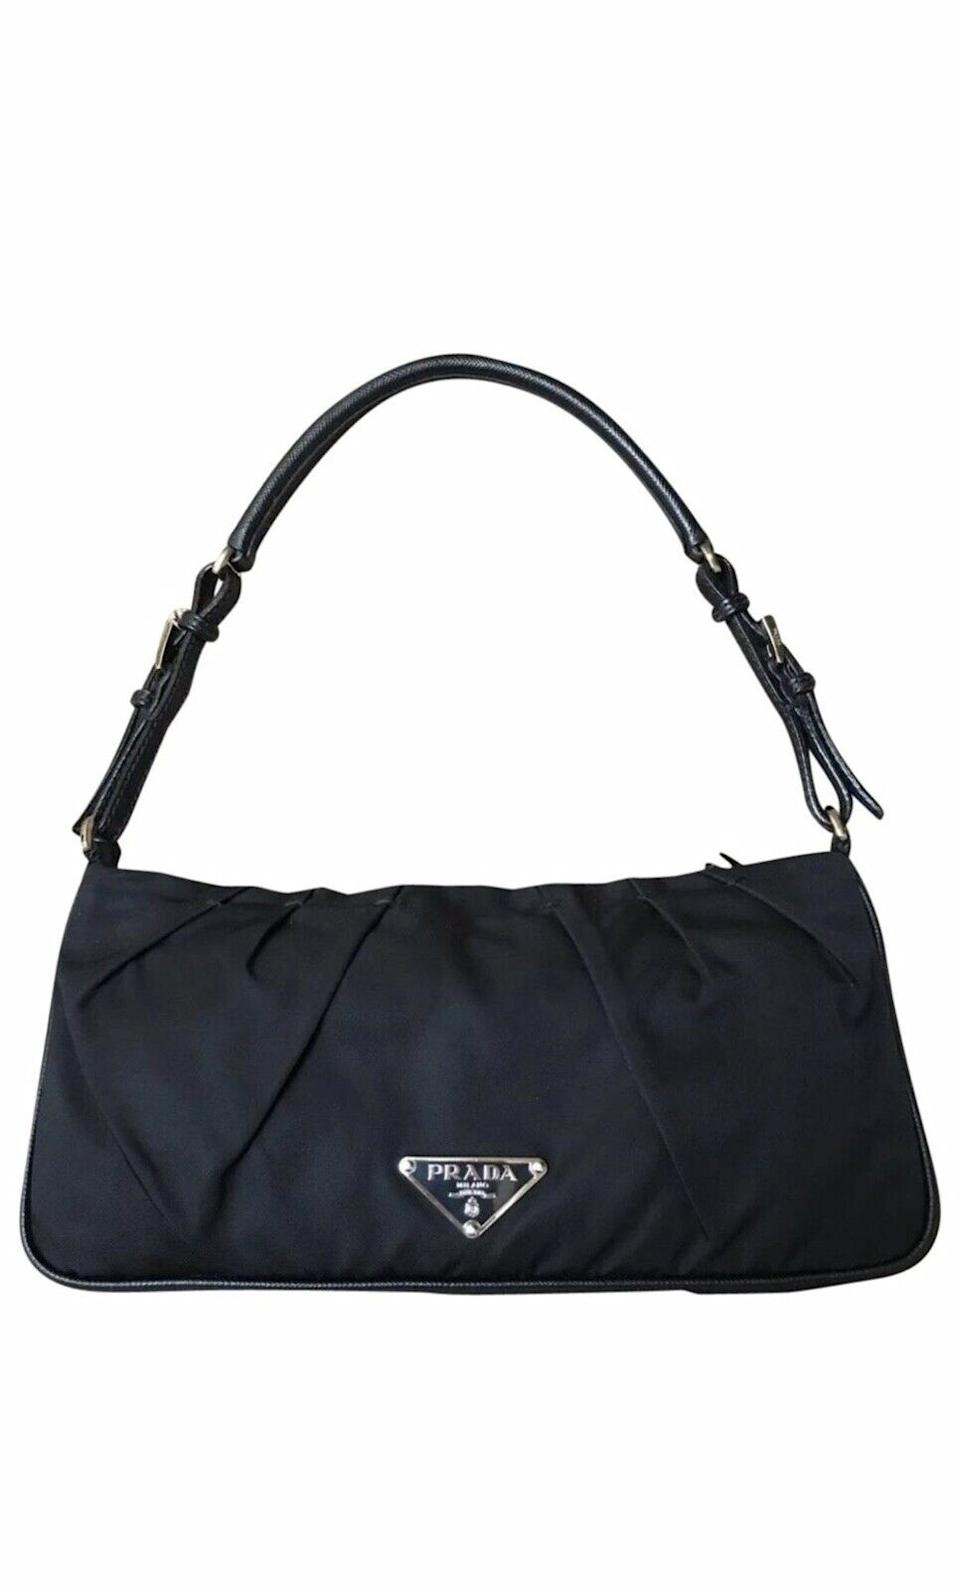 Prada Tessuto shoulder bag (Photo: eBay)